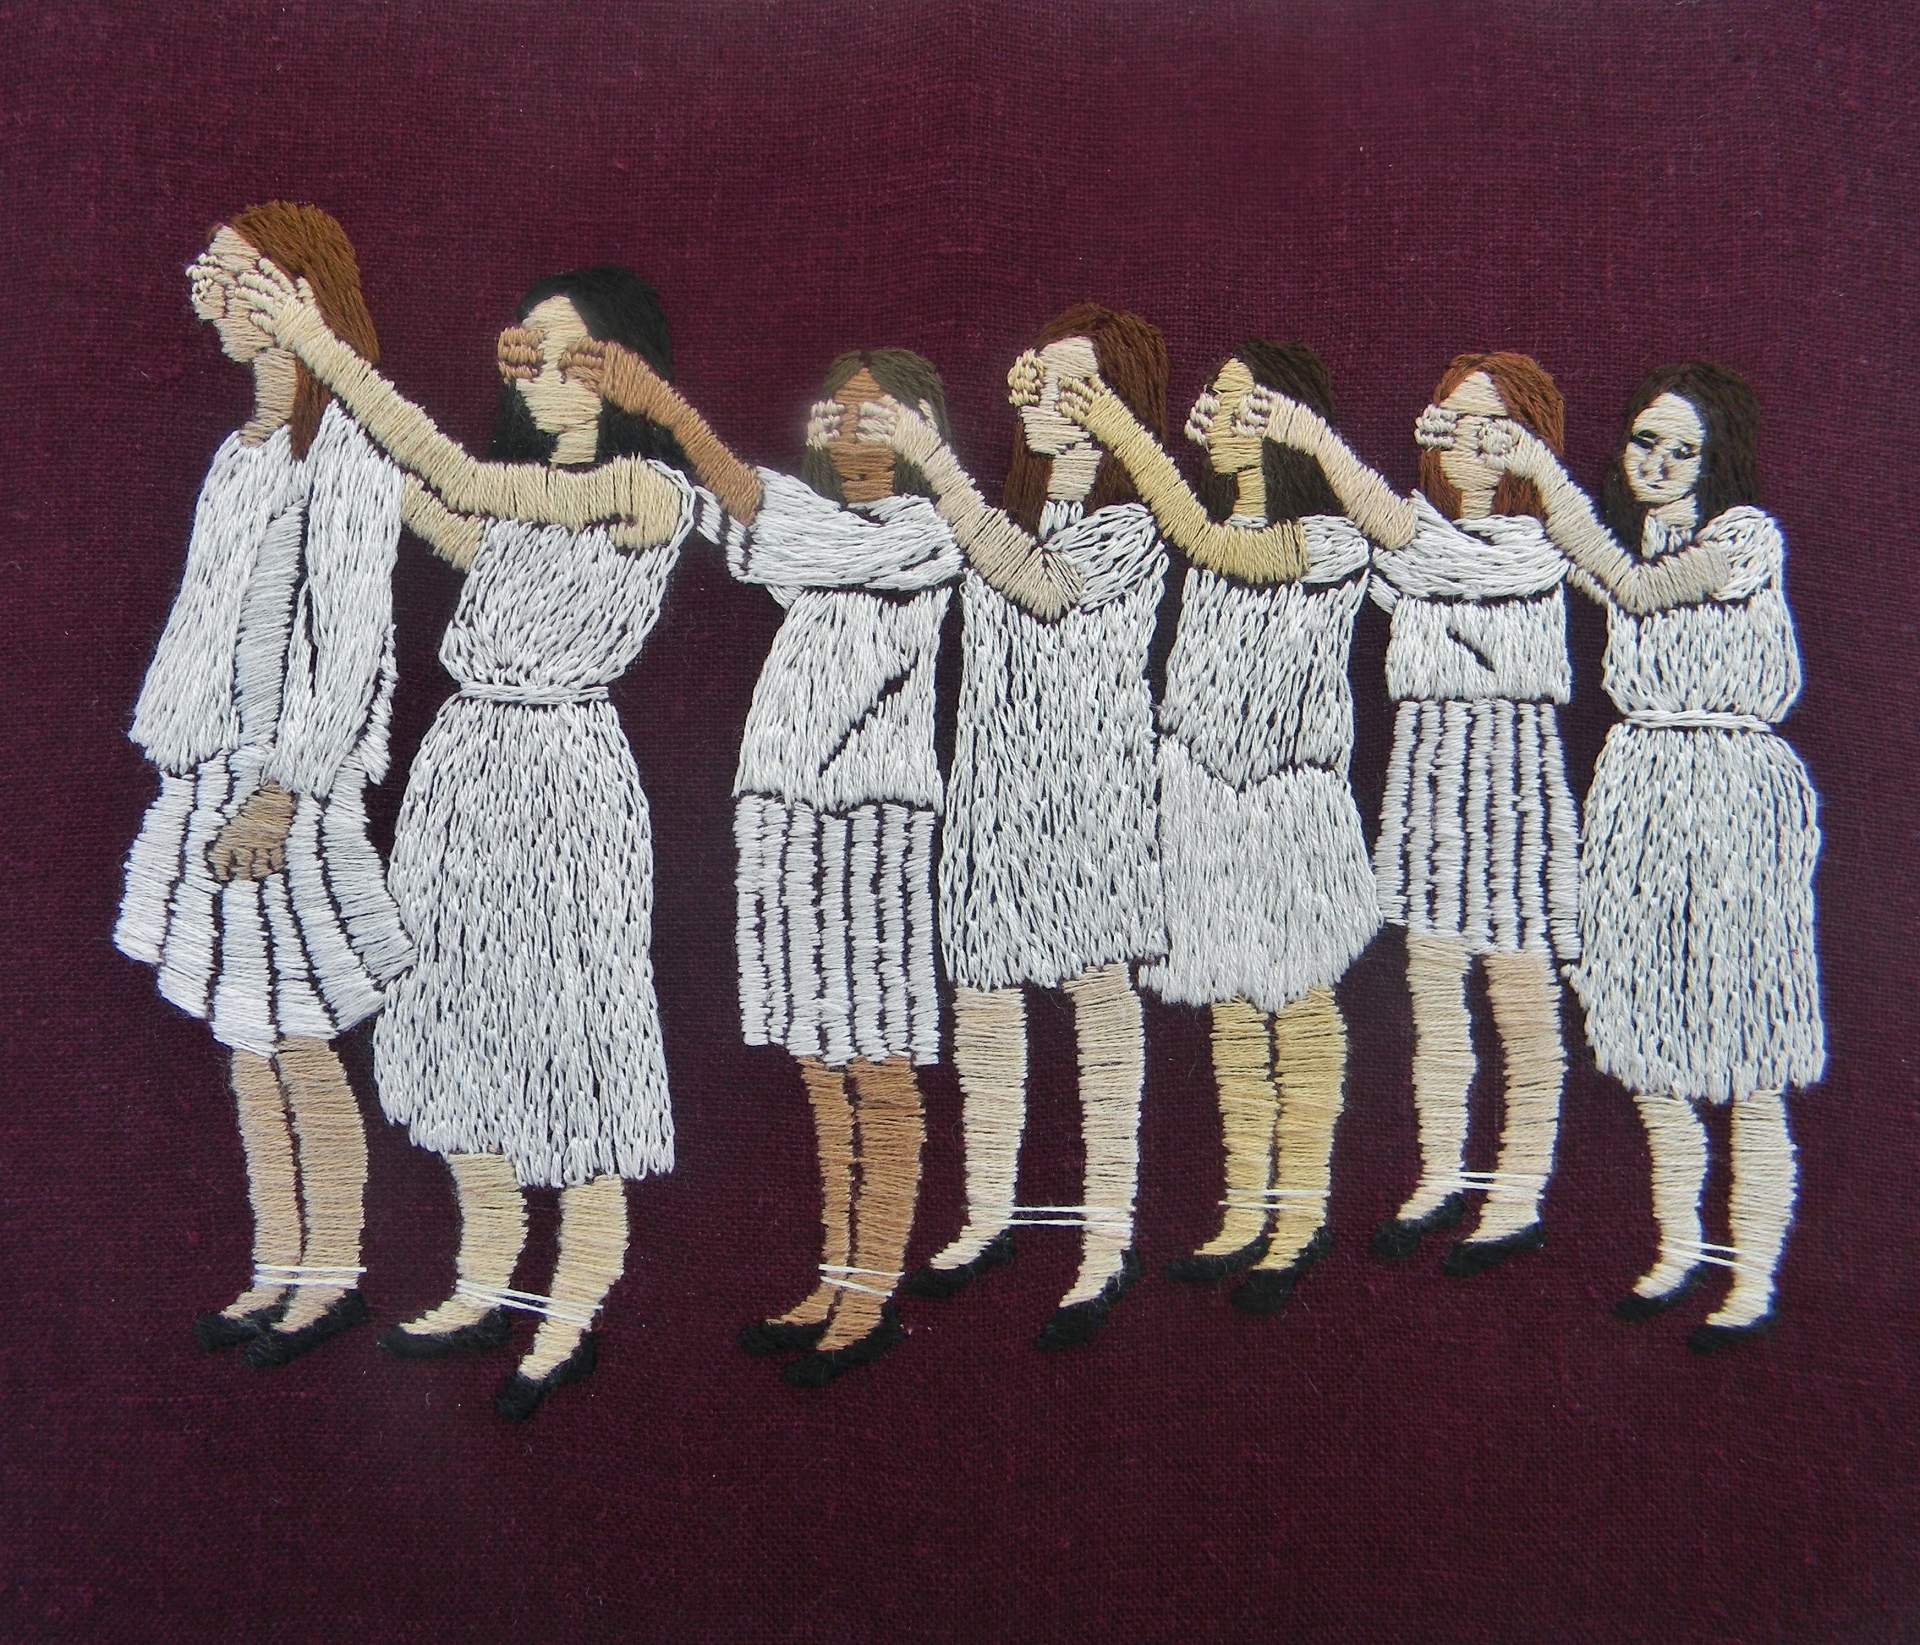 Michelle Kingdom, The world would continue without us, Embroidery, 10.5x12.5in, framed